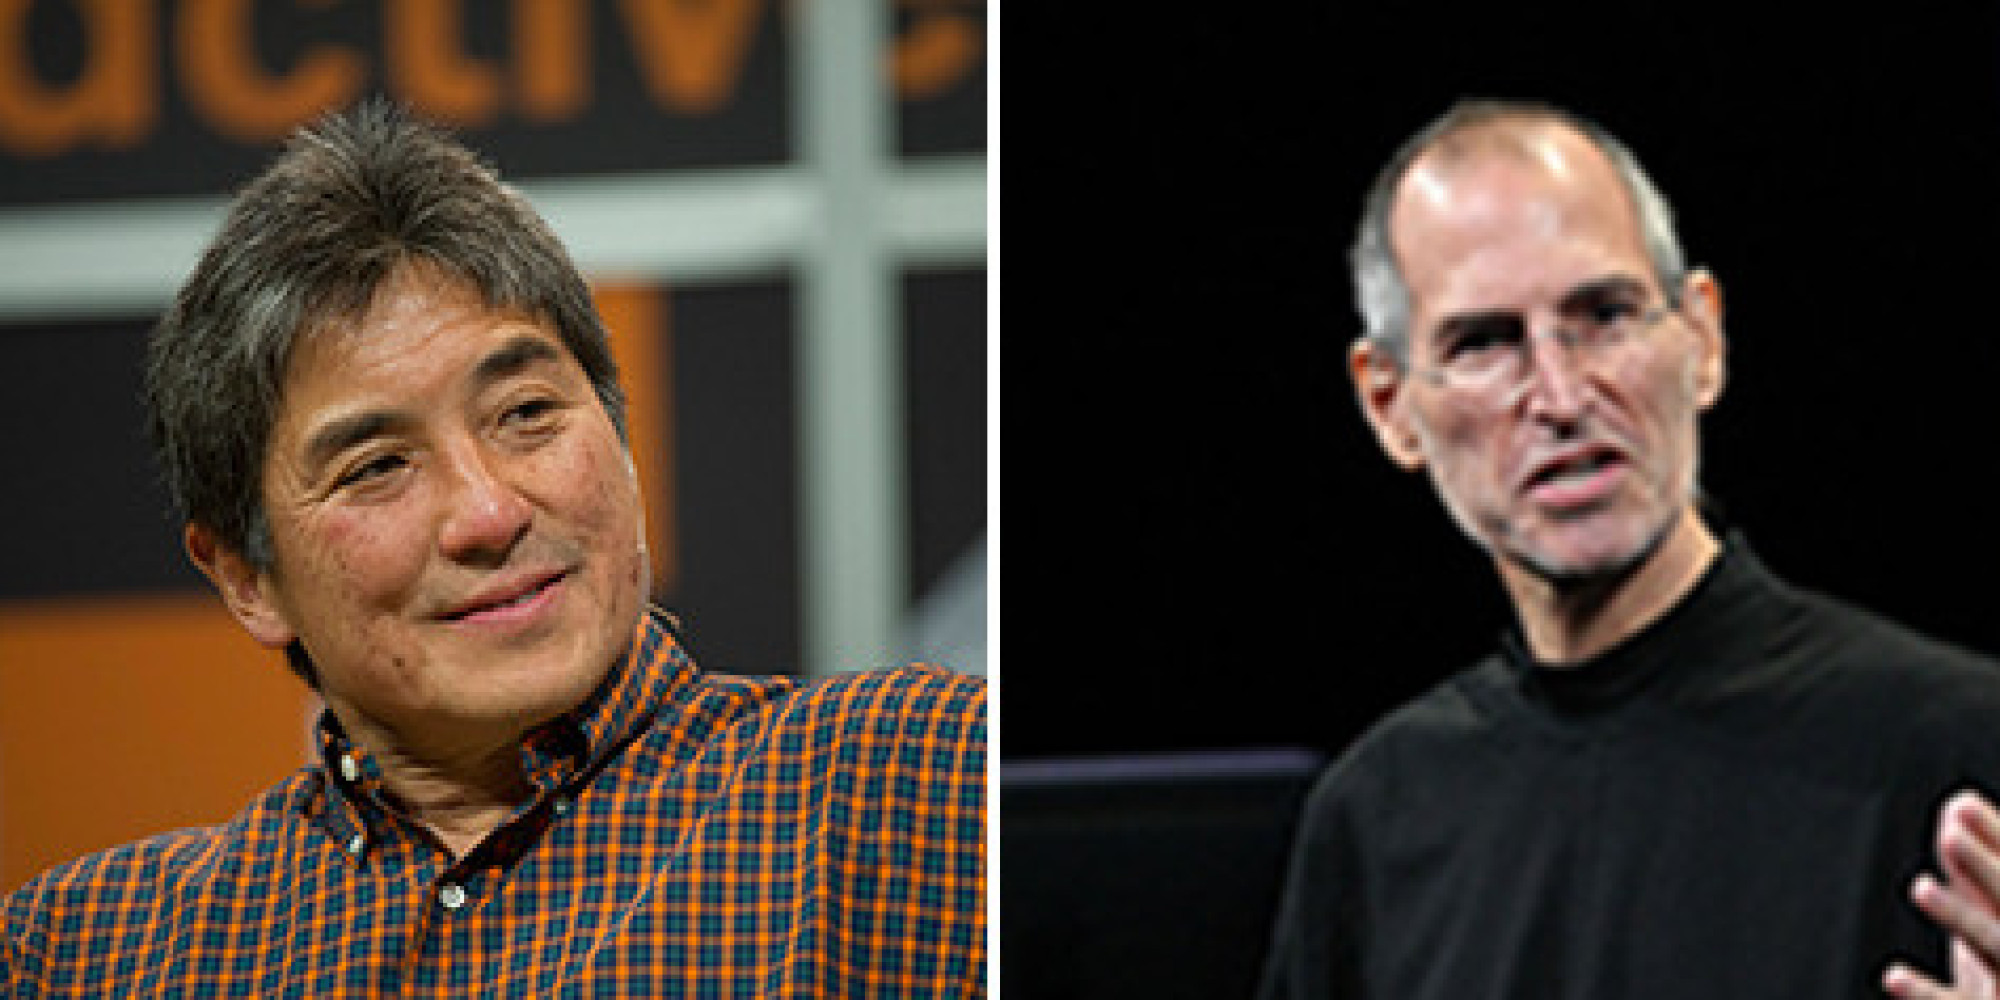 http://www.huffingtonpost.com/2014/12/12/steve-jobs-guy-kawasaki_n_6309526.html?ir=Small+Business